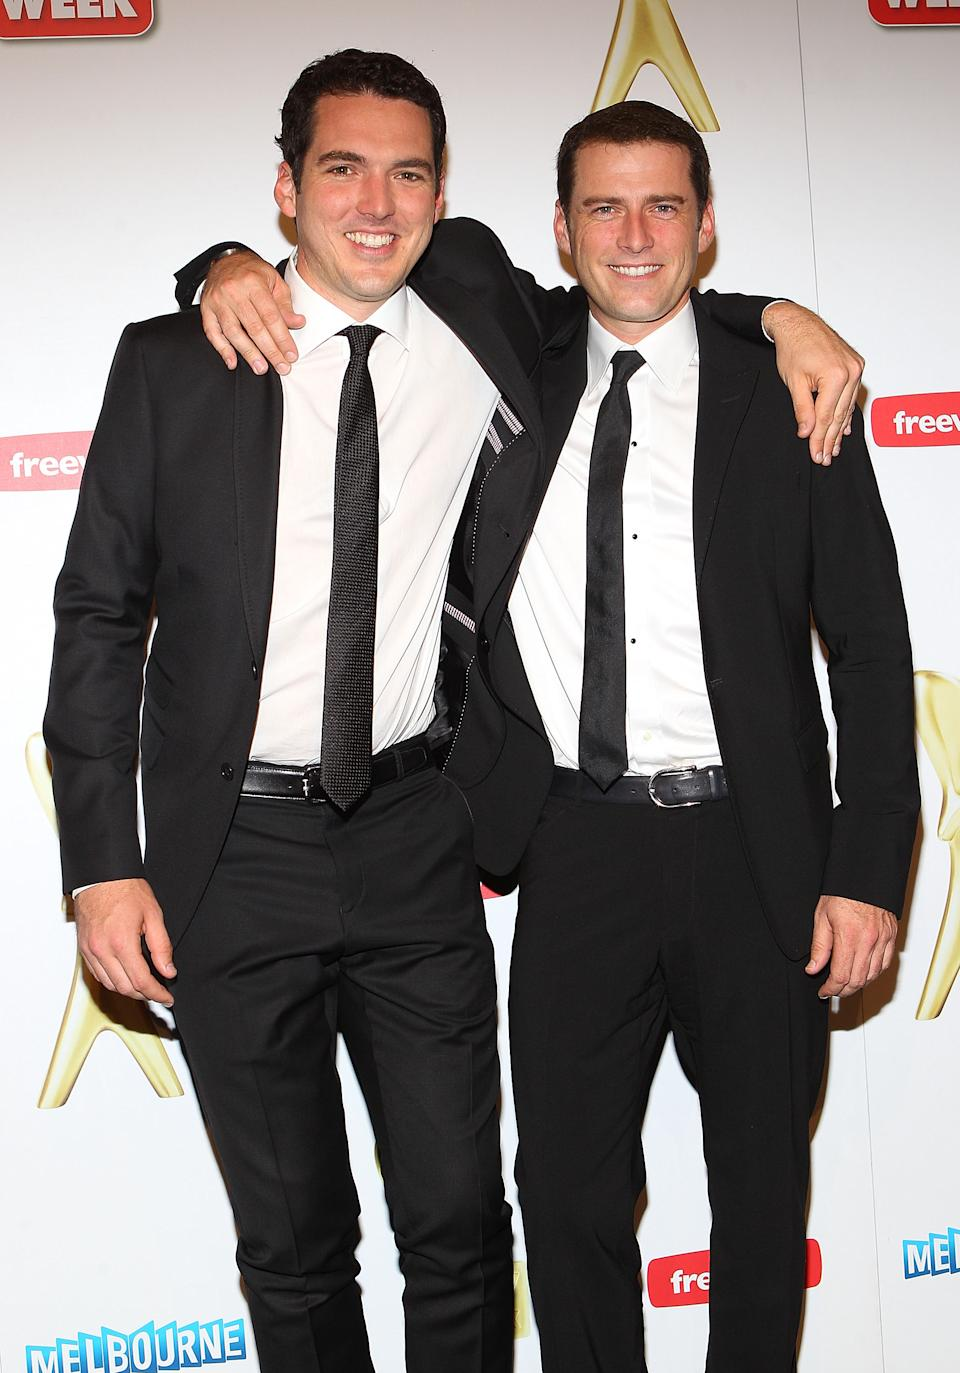 Karl Stefanovic and his brother Pete Stefanovic pose in the media room during the 2011 Logie Awards at Crown Palladium